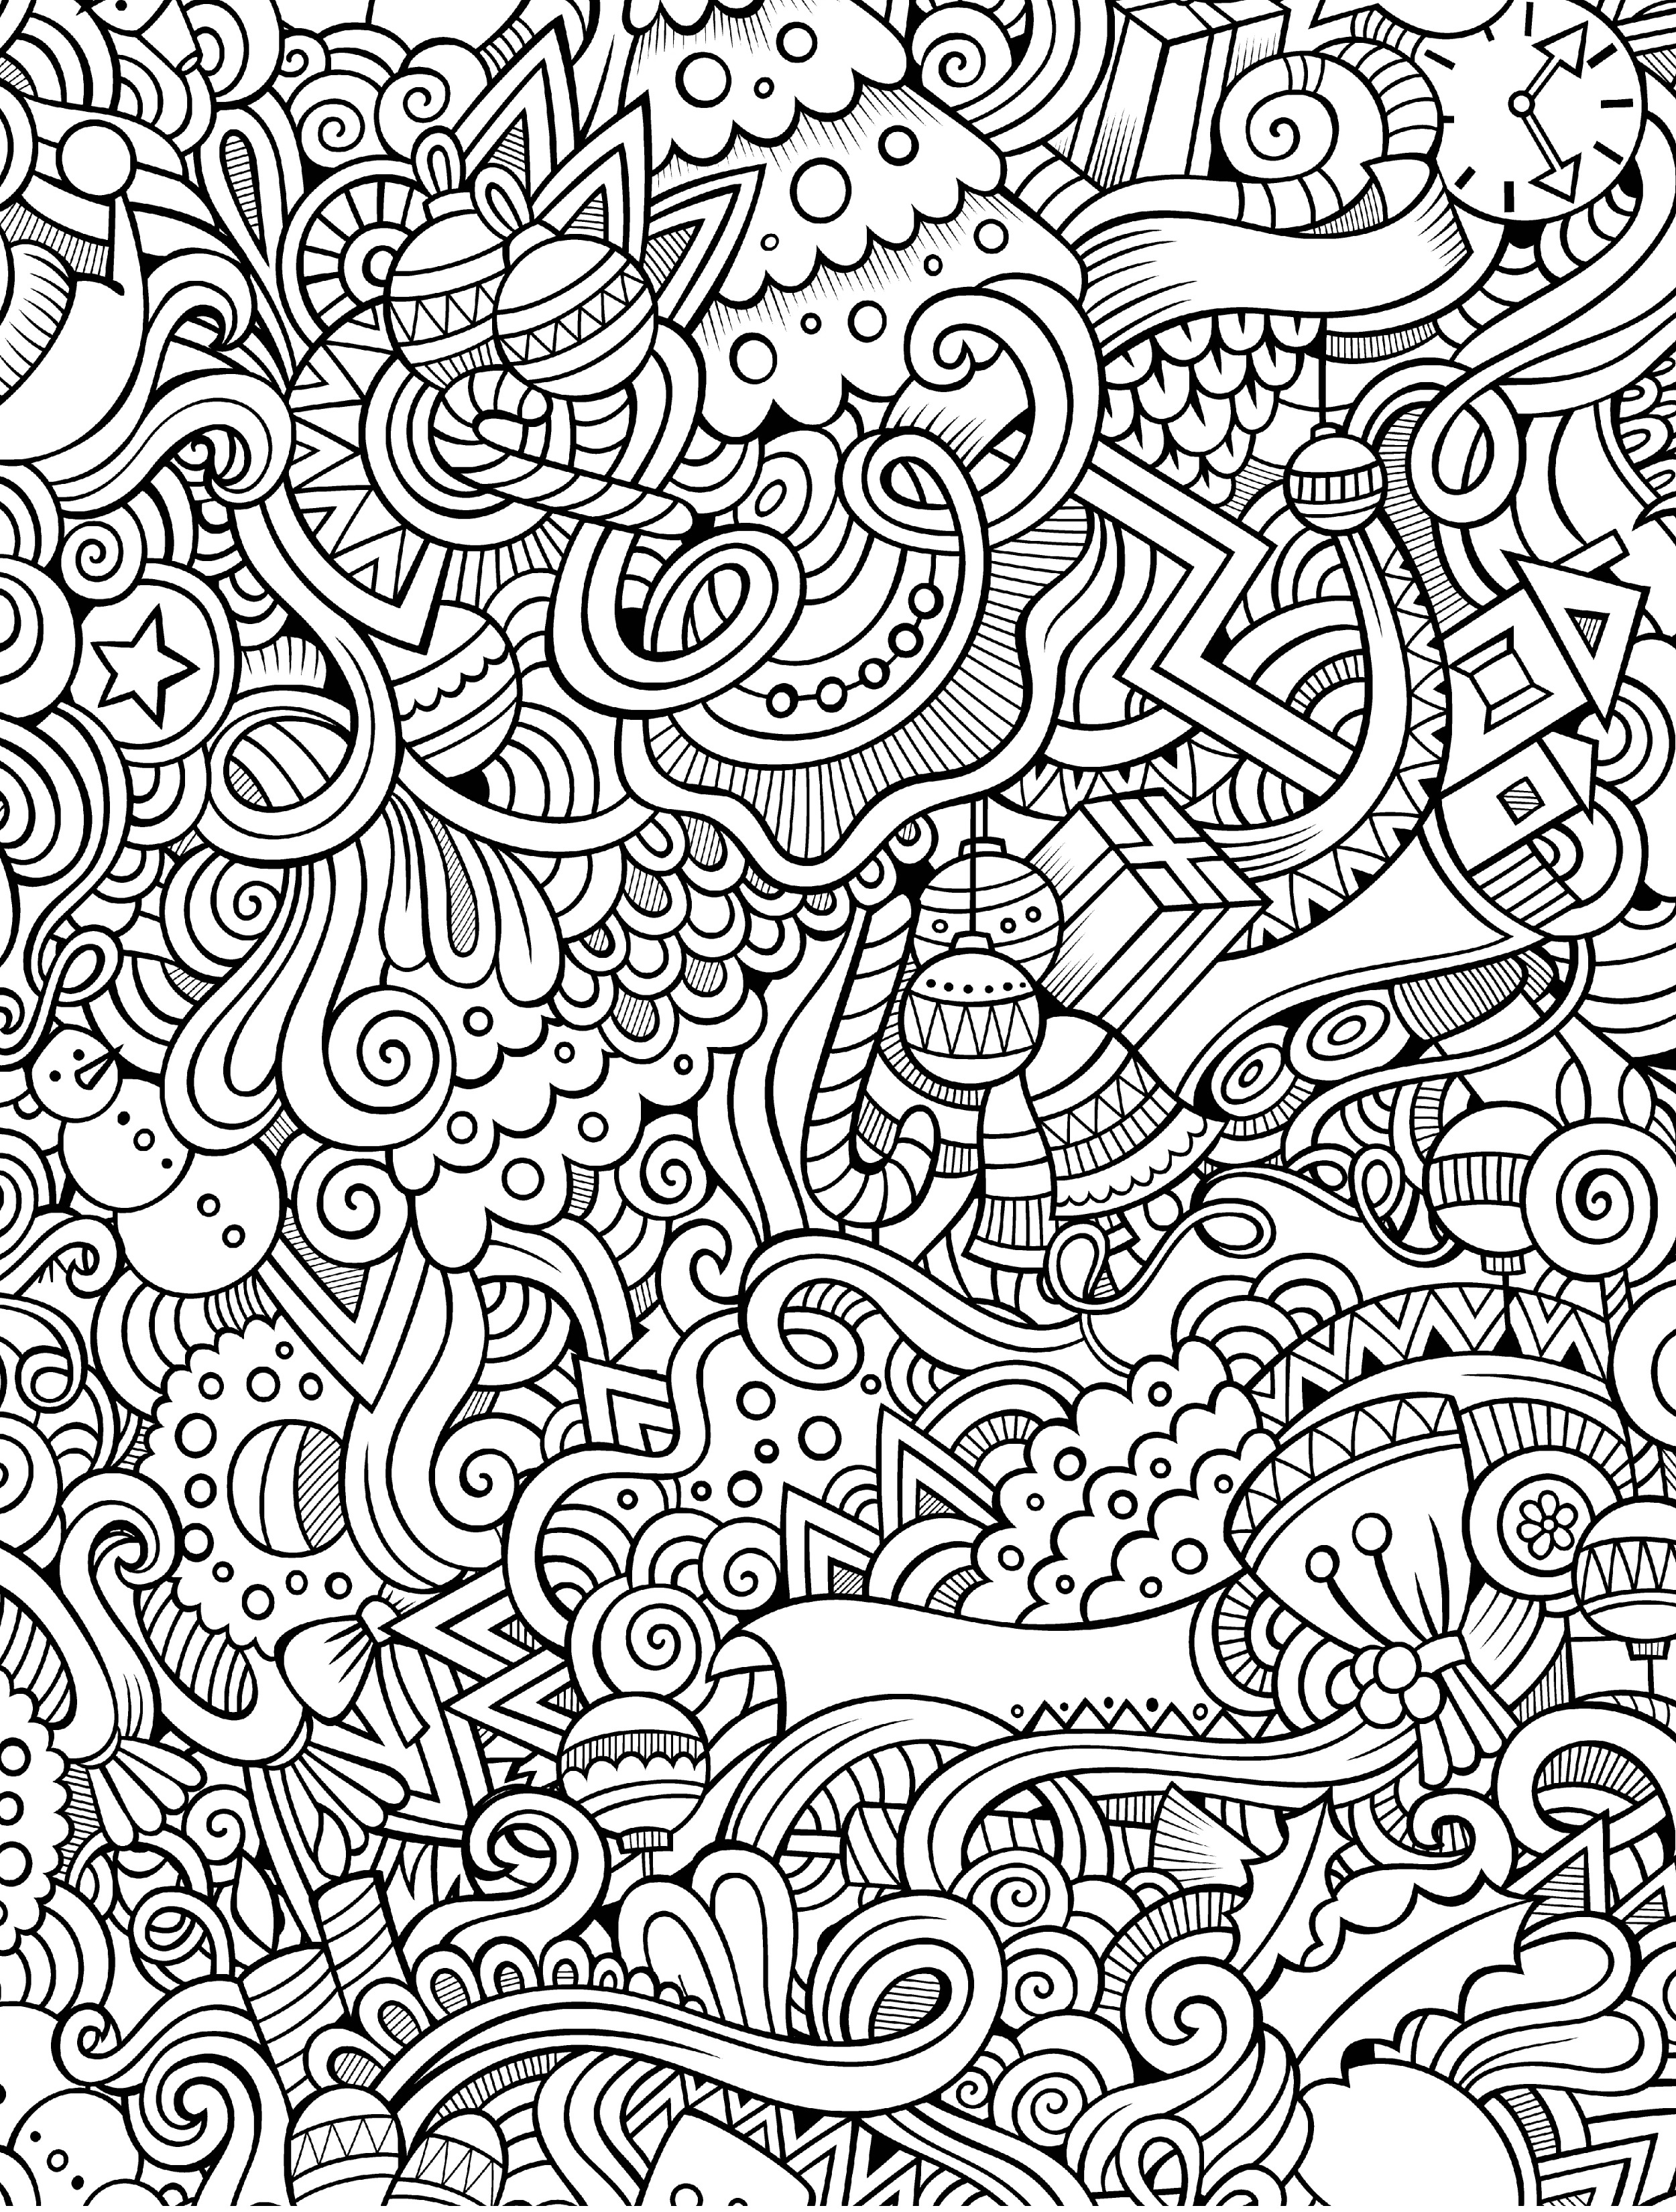 2500x3300 Reduced Downloadable Coloring Pages For Adults Sampler Printable